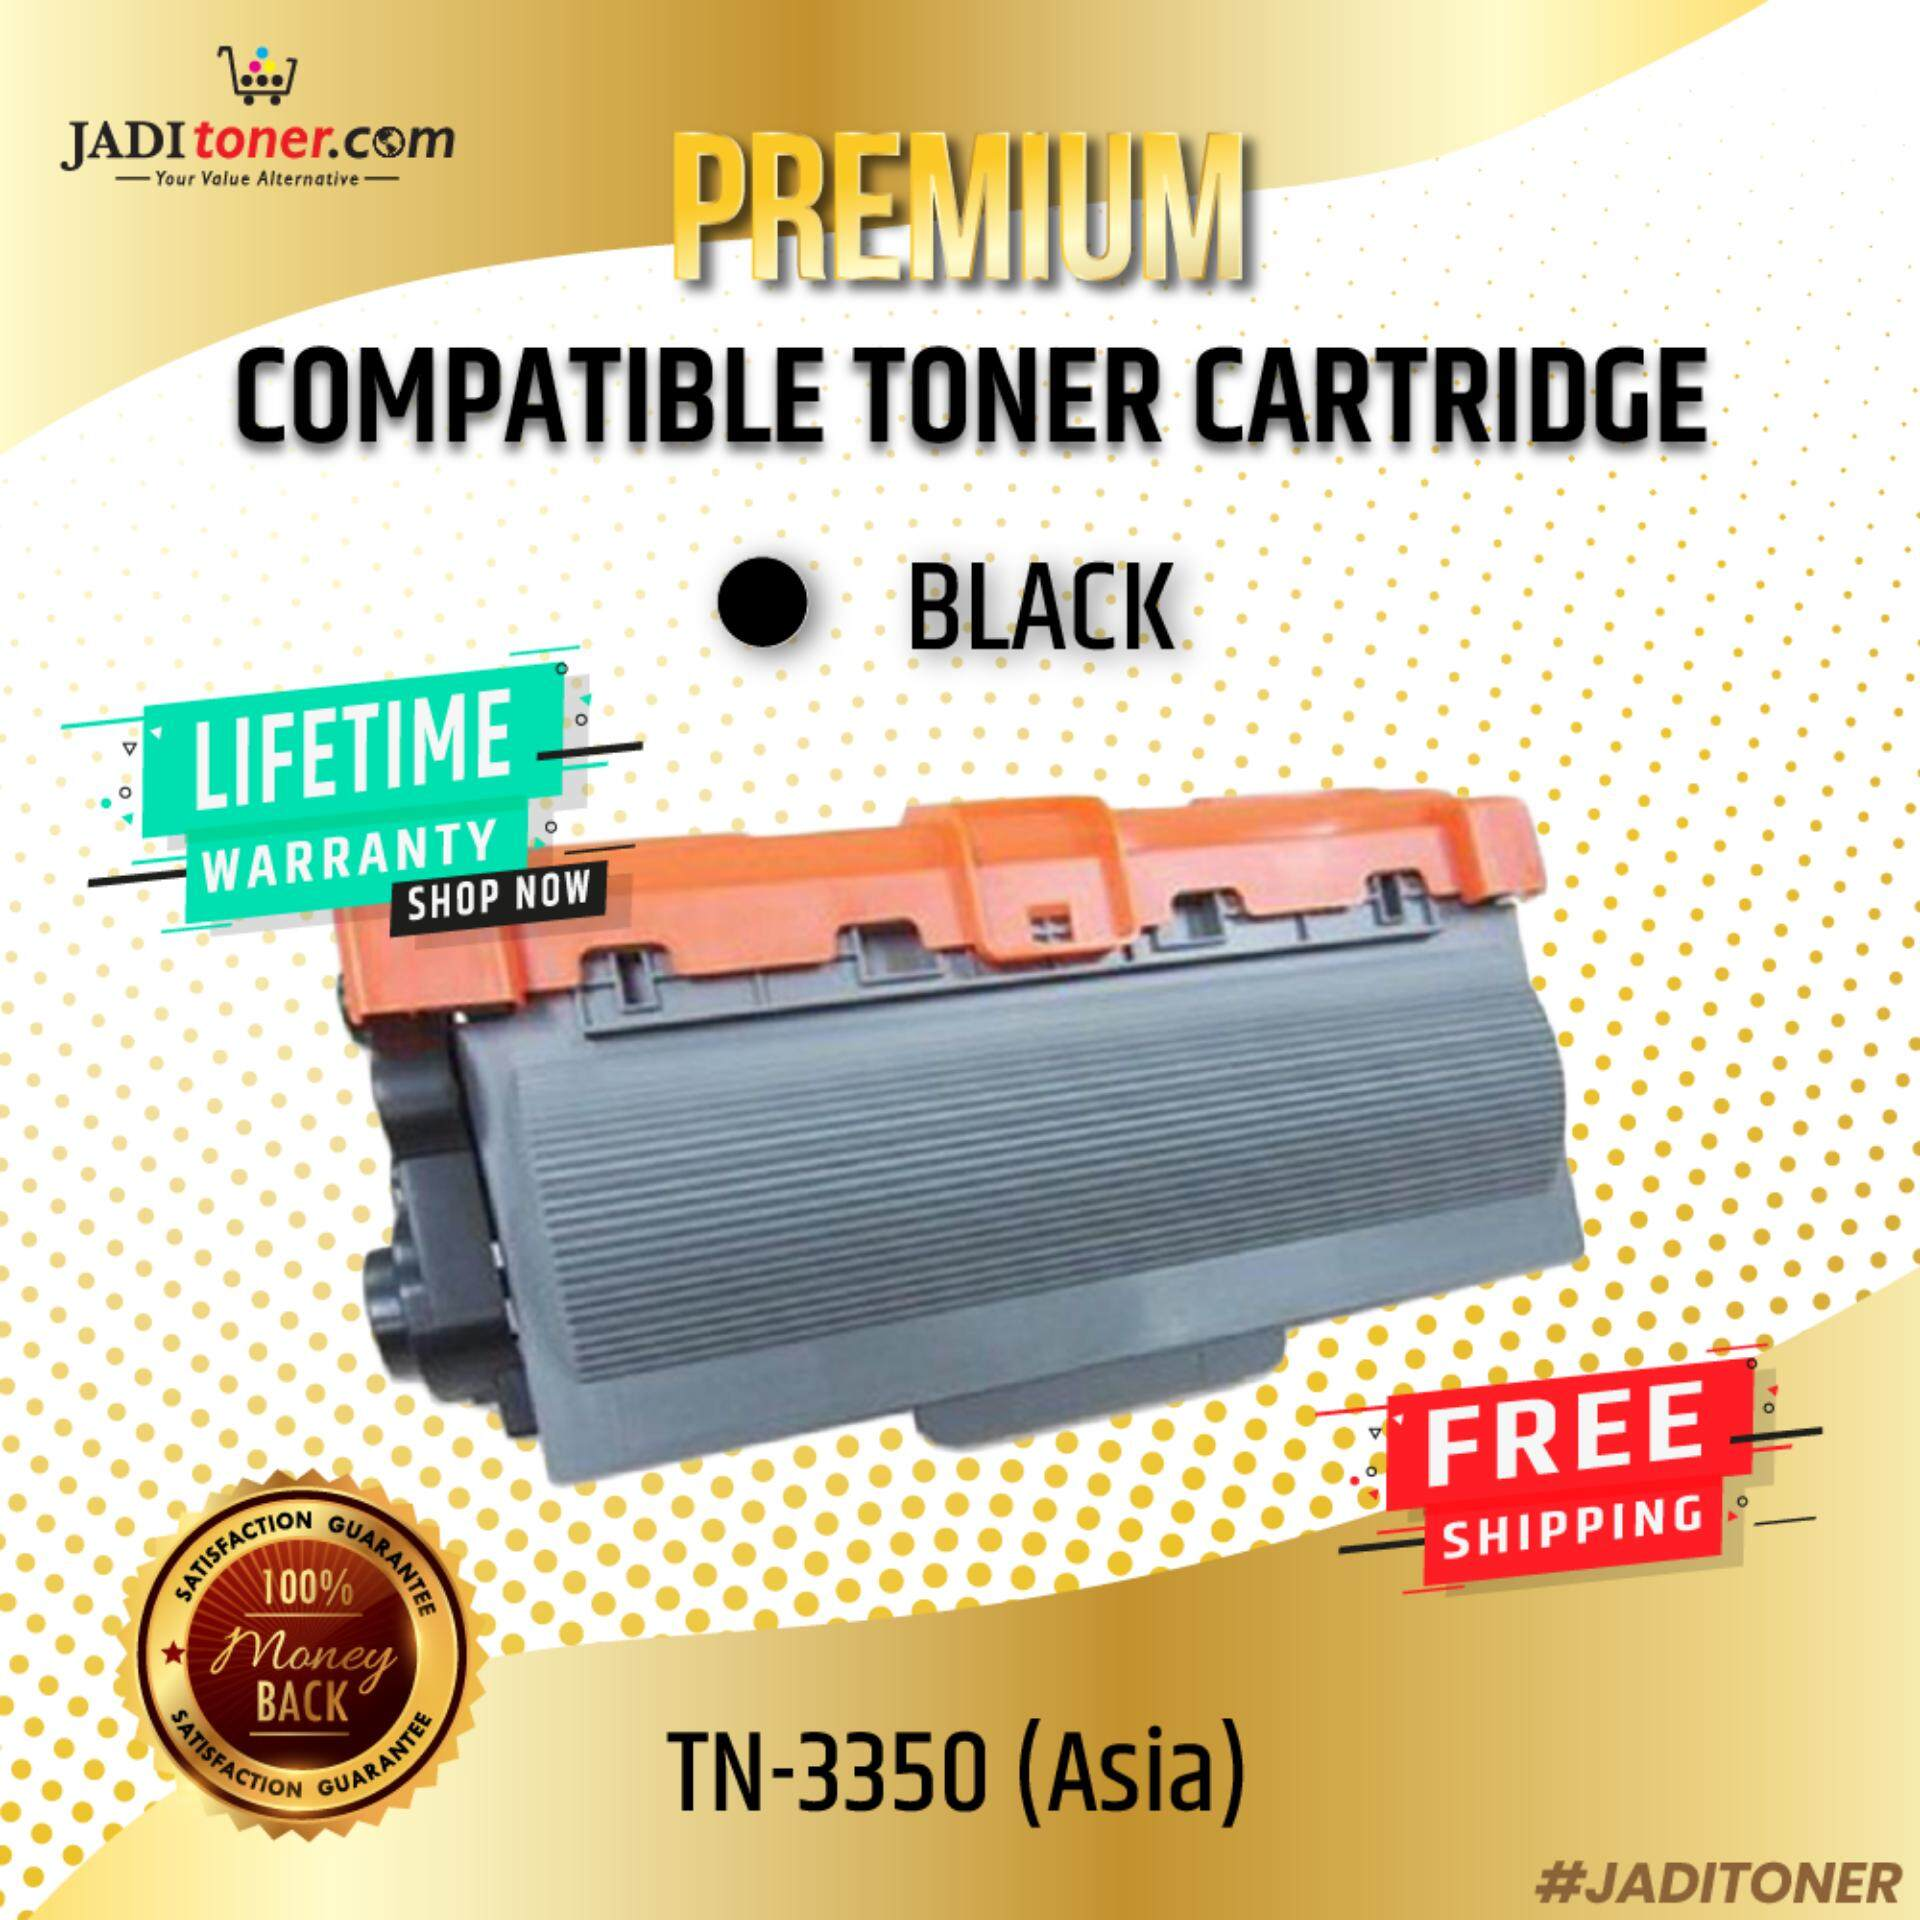 Compatible TN-3350 Laser Toner Cartridge For Brother HL-5440 HL-5450 HL-5470 HL-6180 MFC-8520 MFC-8510 MFC-8710 MFC-8910 MFC-8950 DCP-8110 DCP-8150 DCP-8155 Brother HL5440 HL5450 HL5470 HL6180 MFC8520 MFC8510 MFC8710 MFC8910 MFC8950 Brother TN3350 3350